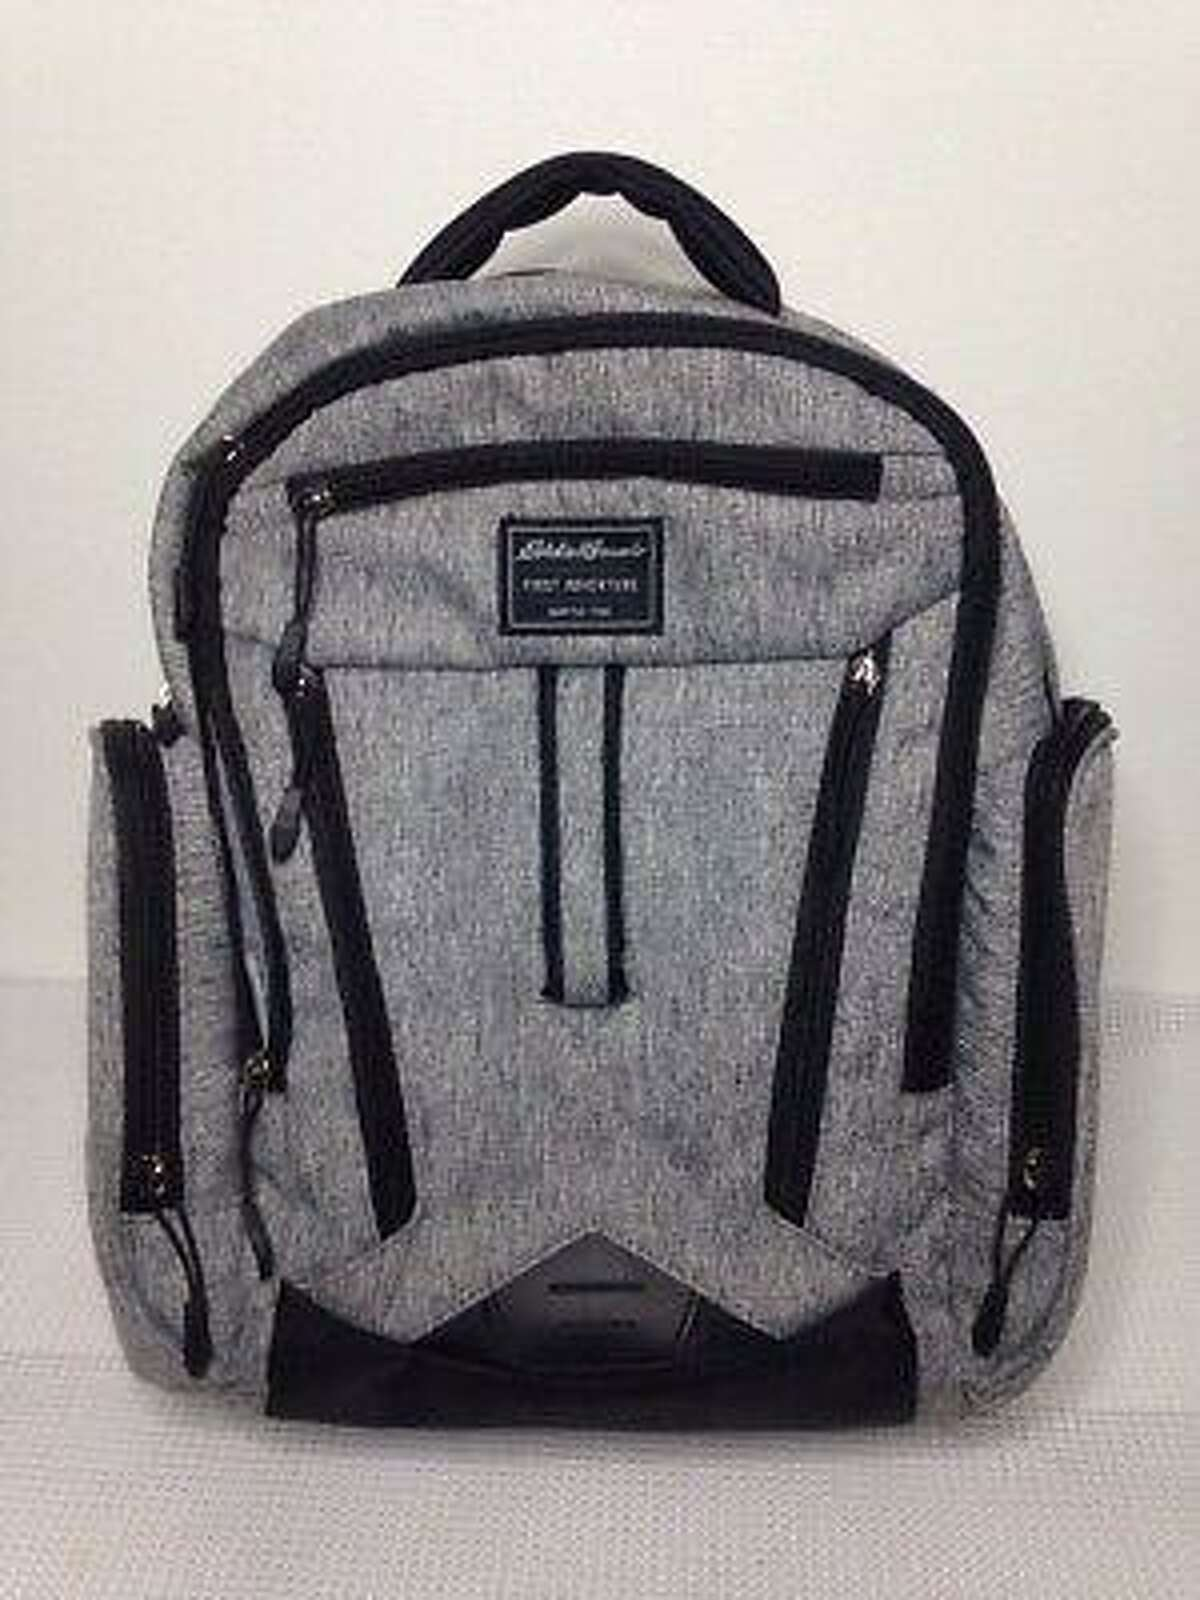 A stock image of the heather grey Eddie Bauer diaper bag backpack used by Christine Holloway to care for her 1-year-old daughter Vanessa Morales.